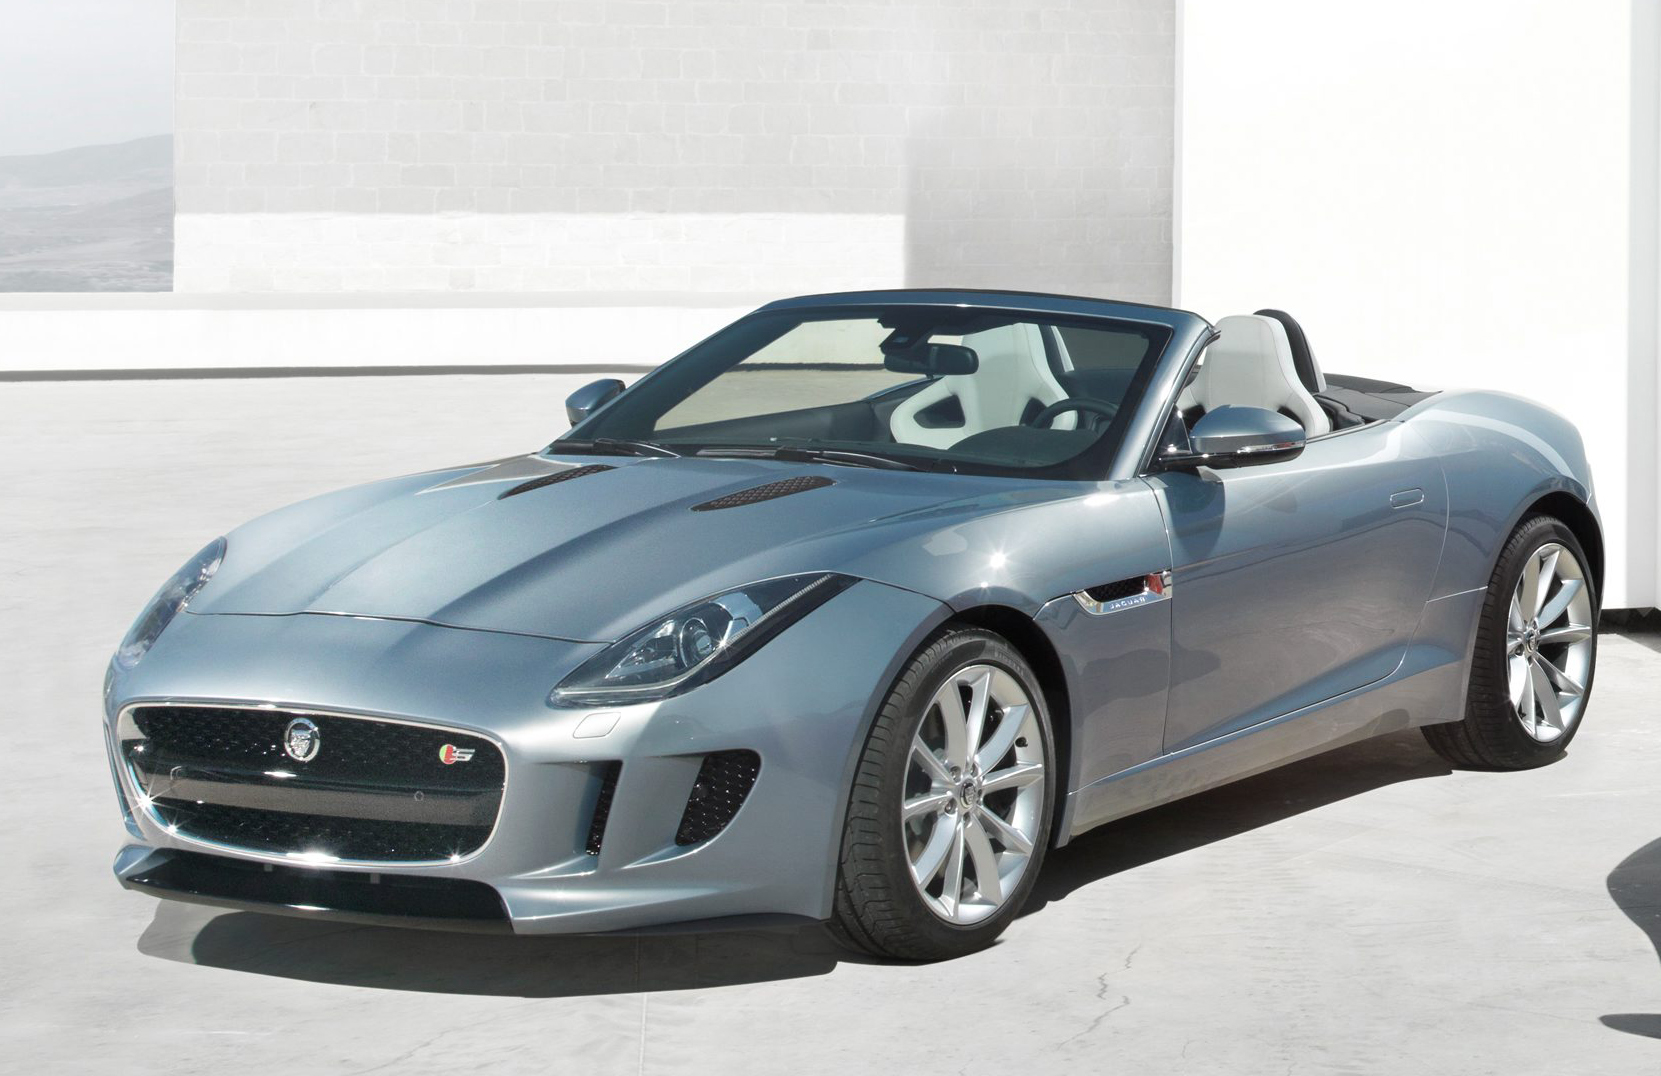 jaguar f type preview f is for far too expensive blog of speedblog of speed. Black Bedroom Furniture Sets. Home Design Ideas